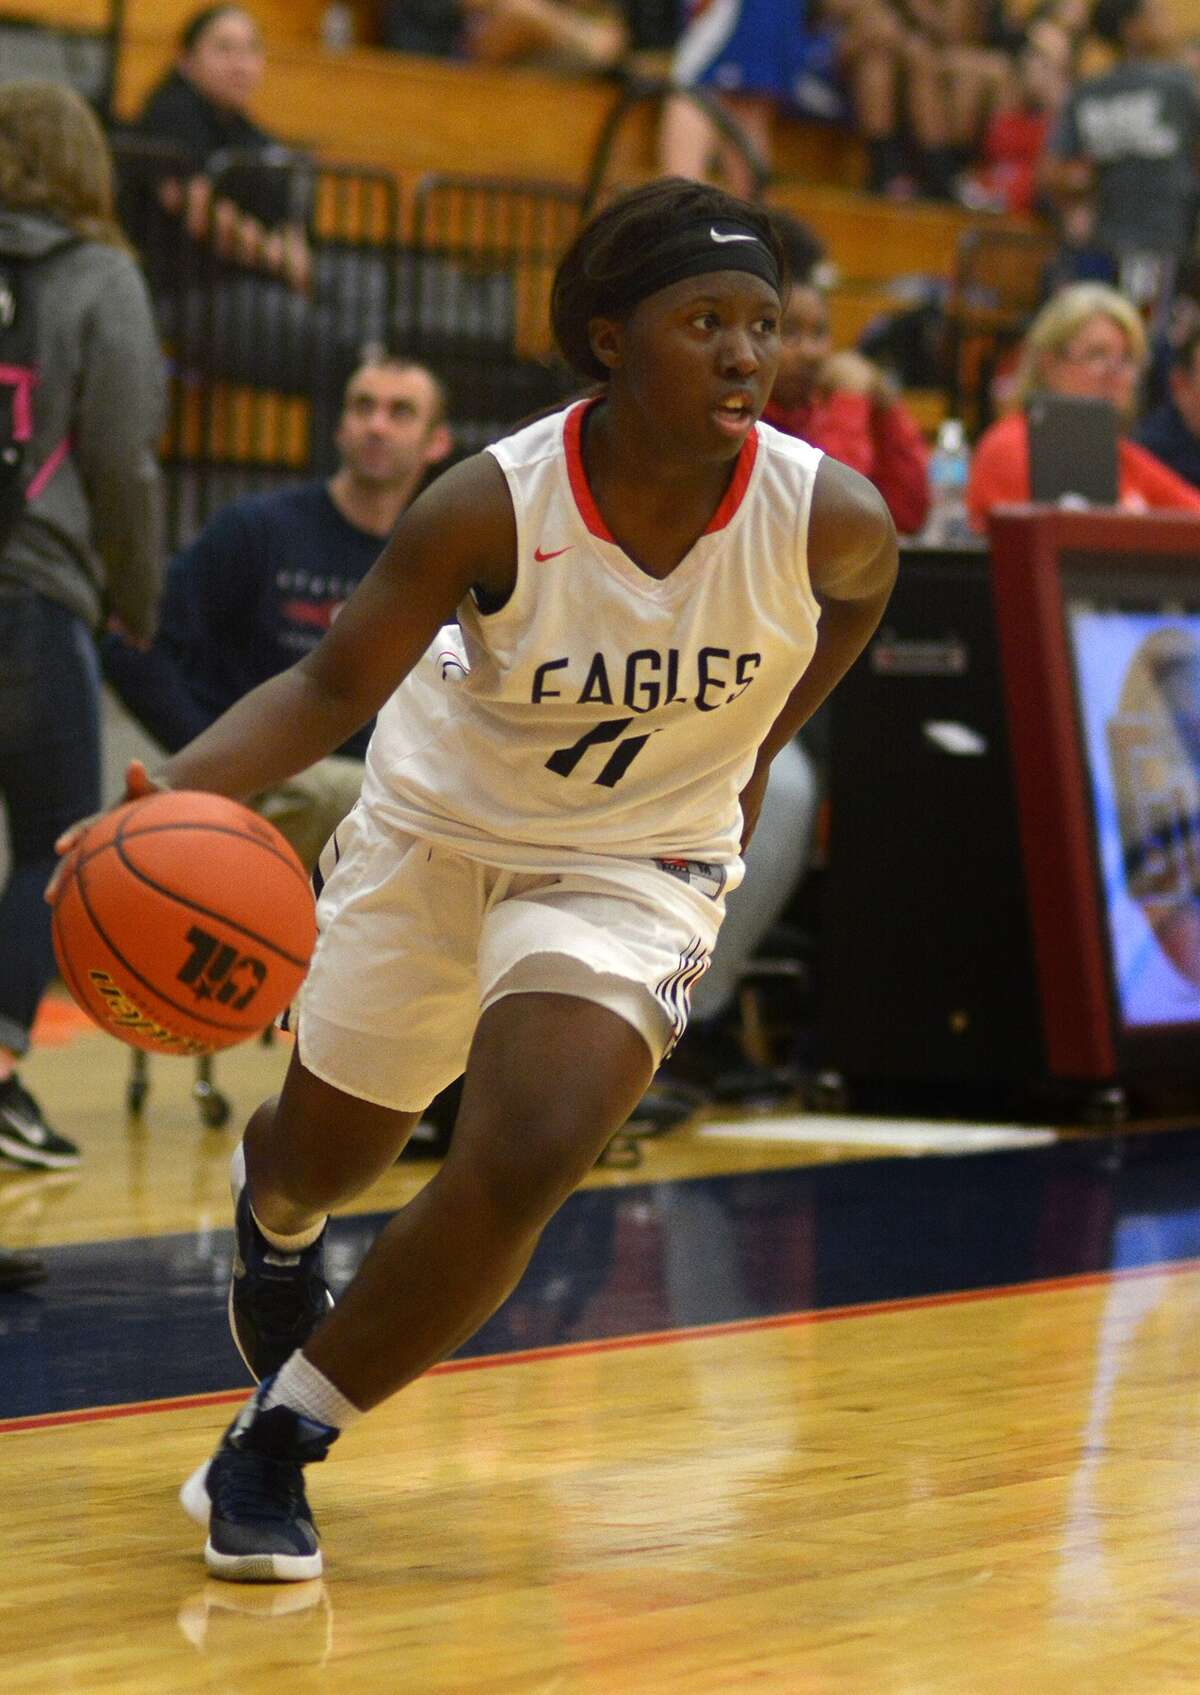 Atascocita senior guard Jada Burks works the ball against Oak Ridge during their District 15-5A matchup at AHS on Jan. 8, 2016. (Photo by Jerry Baker/Freelance)